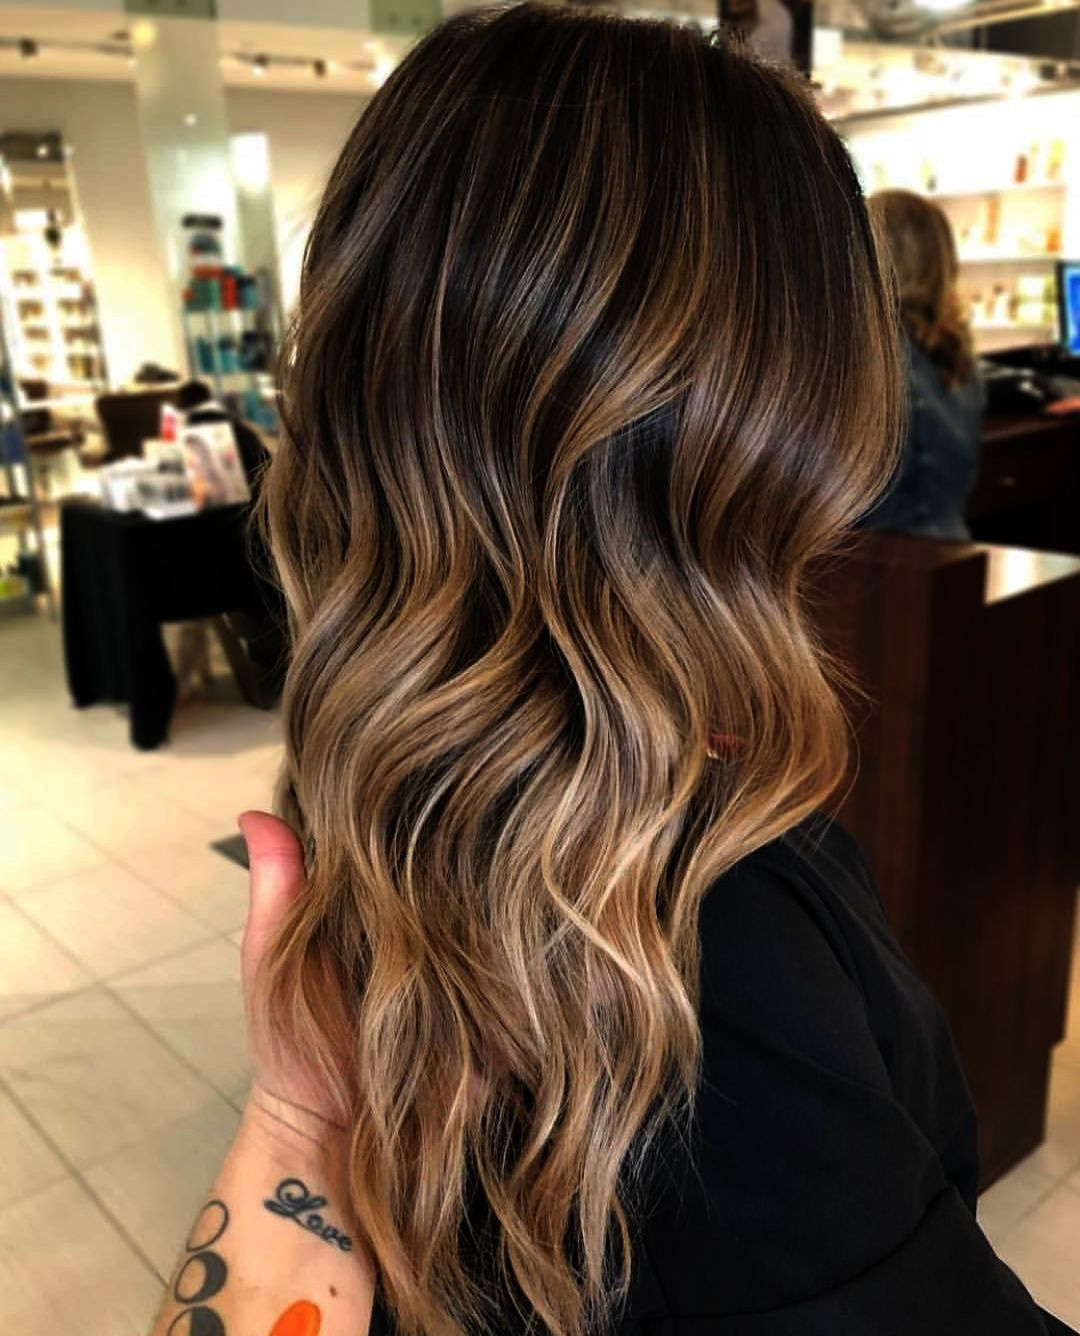 Hair Salon Tucson also Haircut Near Me Cost | Fresh hair, Balayage hair,  Hair styles